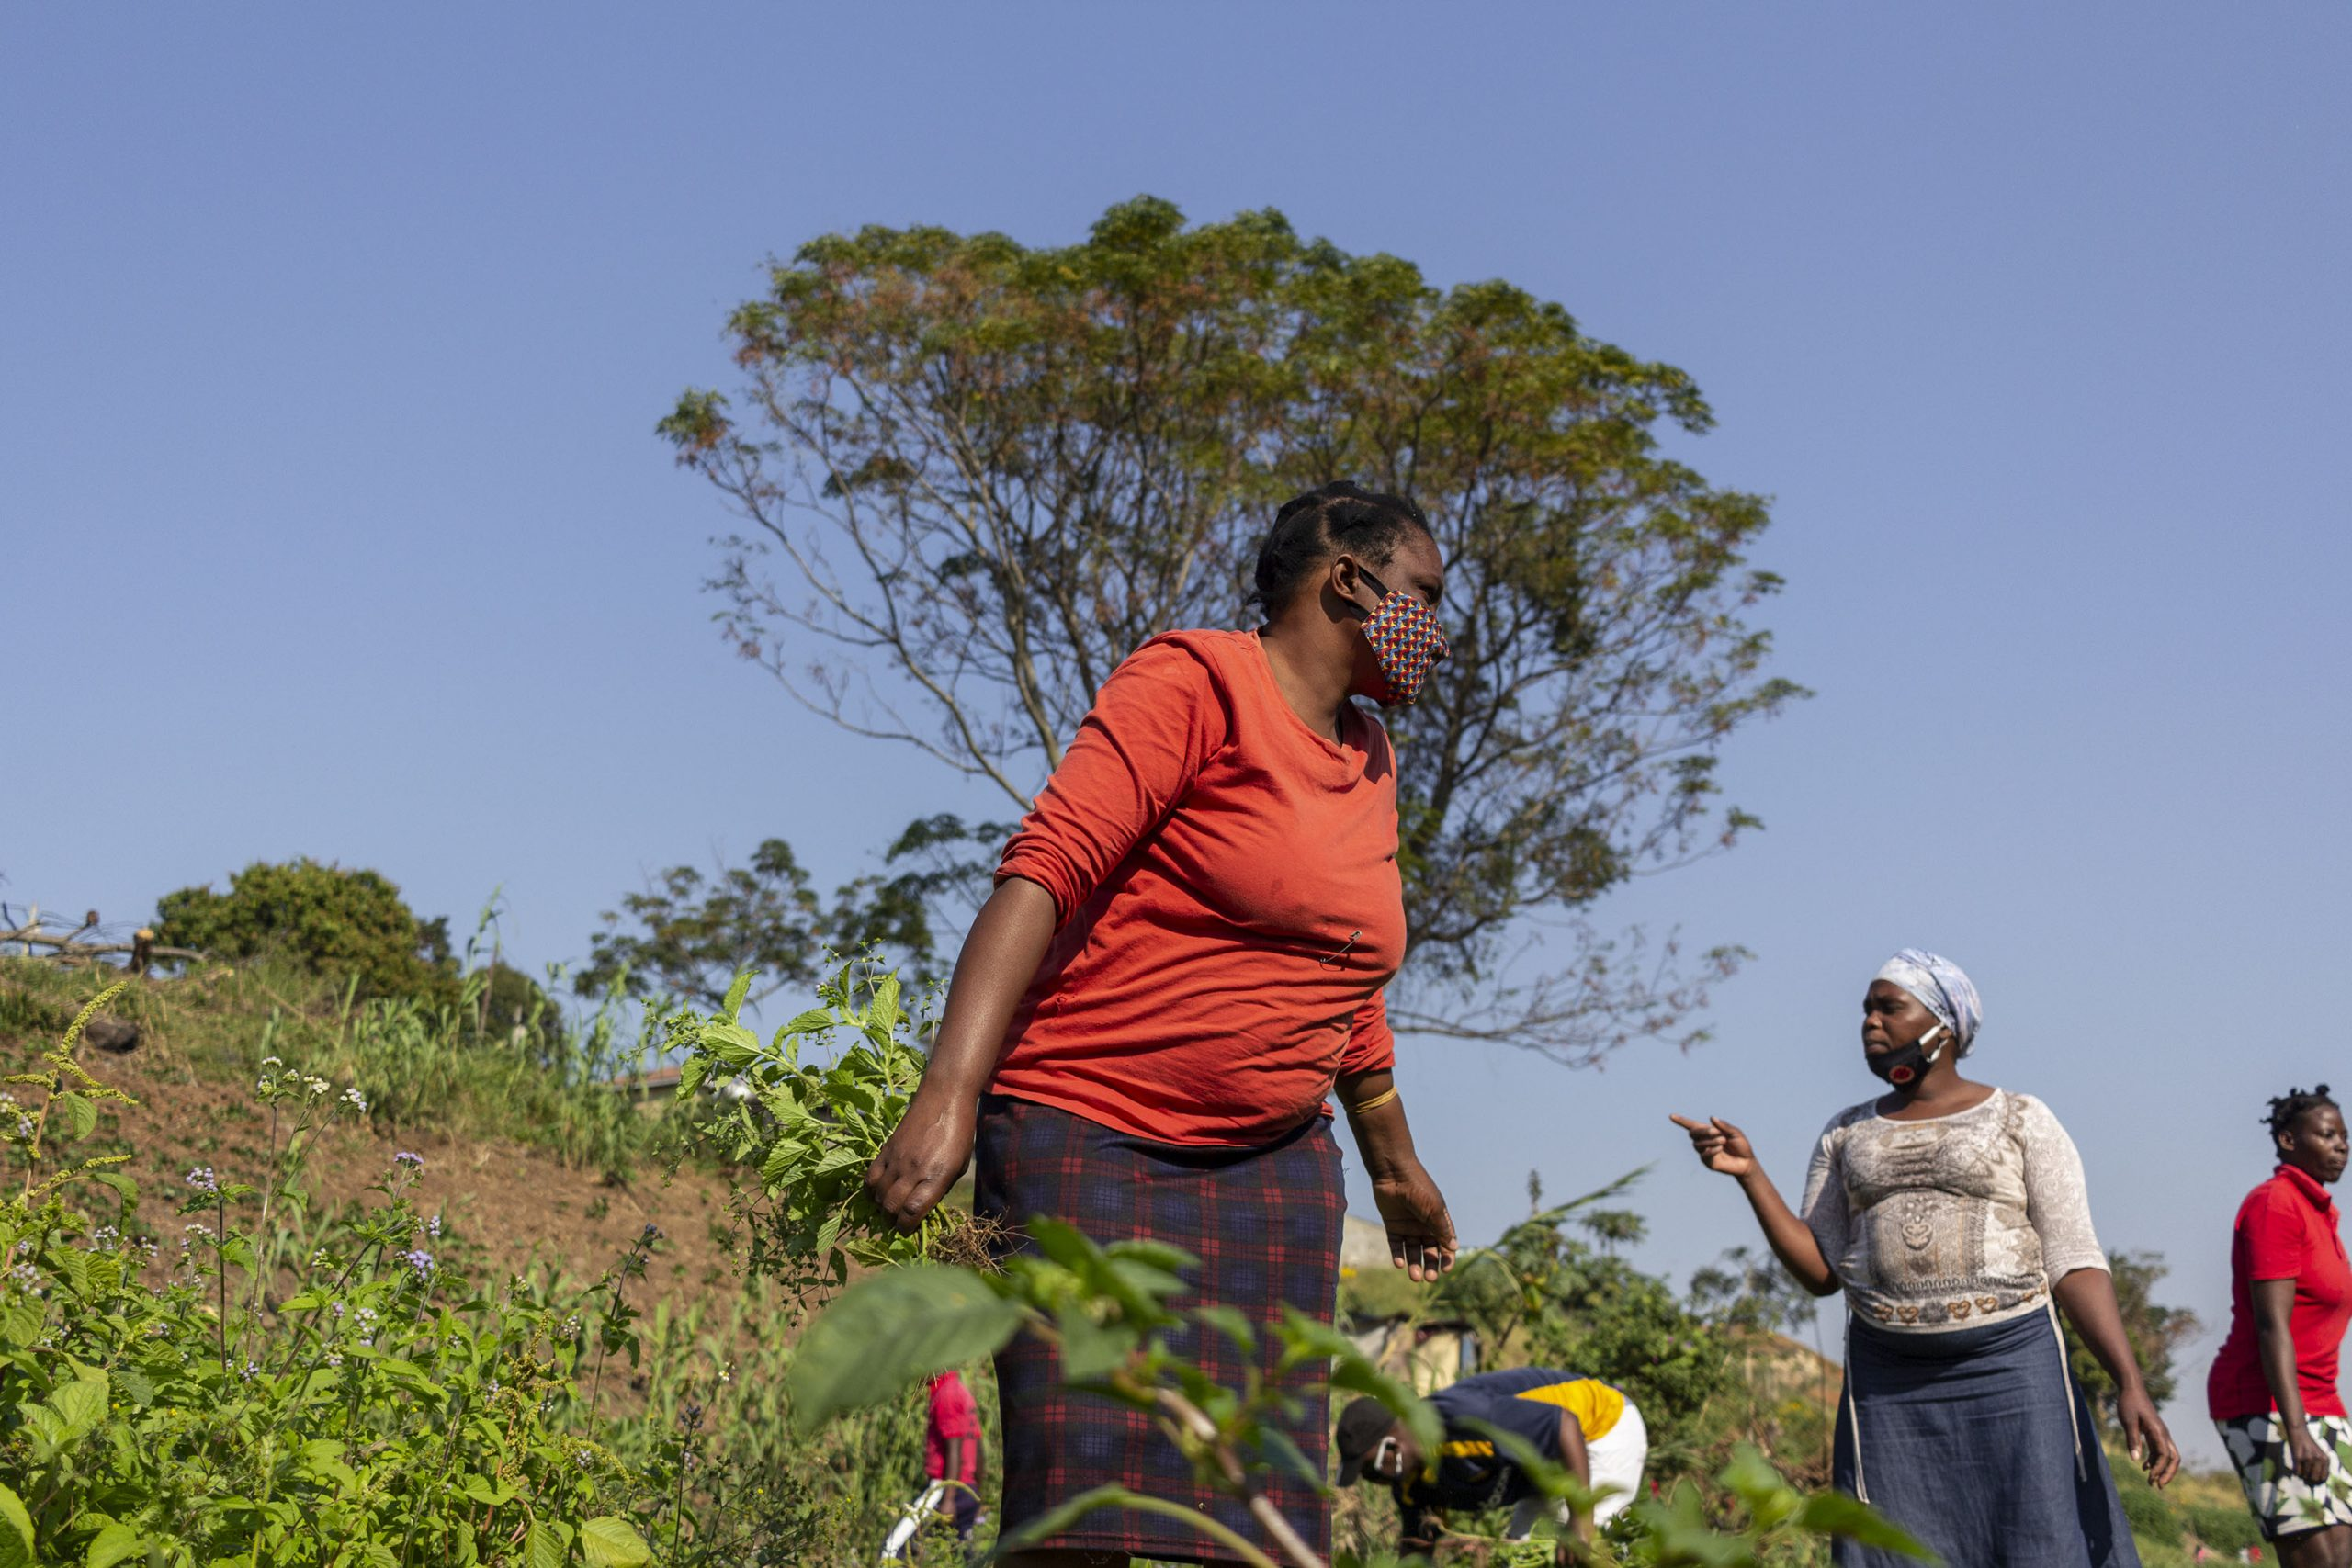 9 June 2020: Zamekile Ngwane works in the food garden alongside other eKhenana residents. They have planted different kinds of seeds and the vegetables they harvest are sometimes their only source of food for the day.